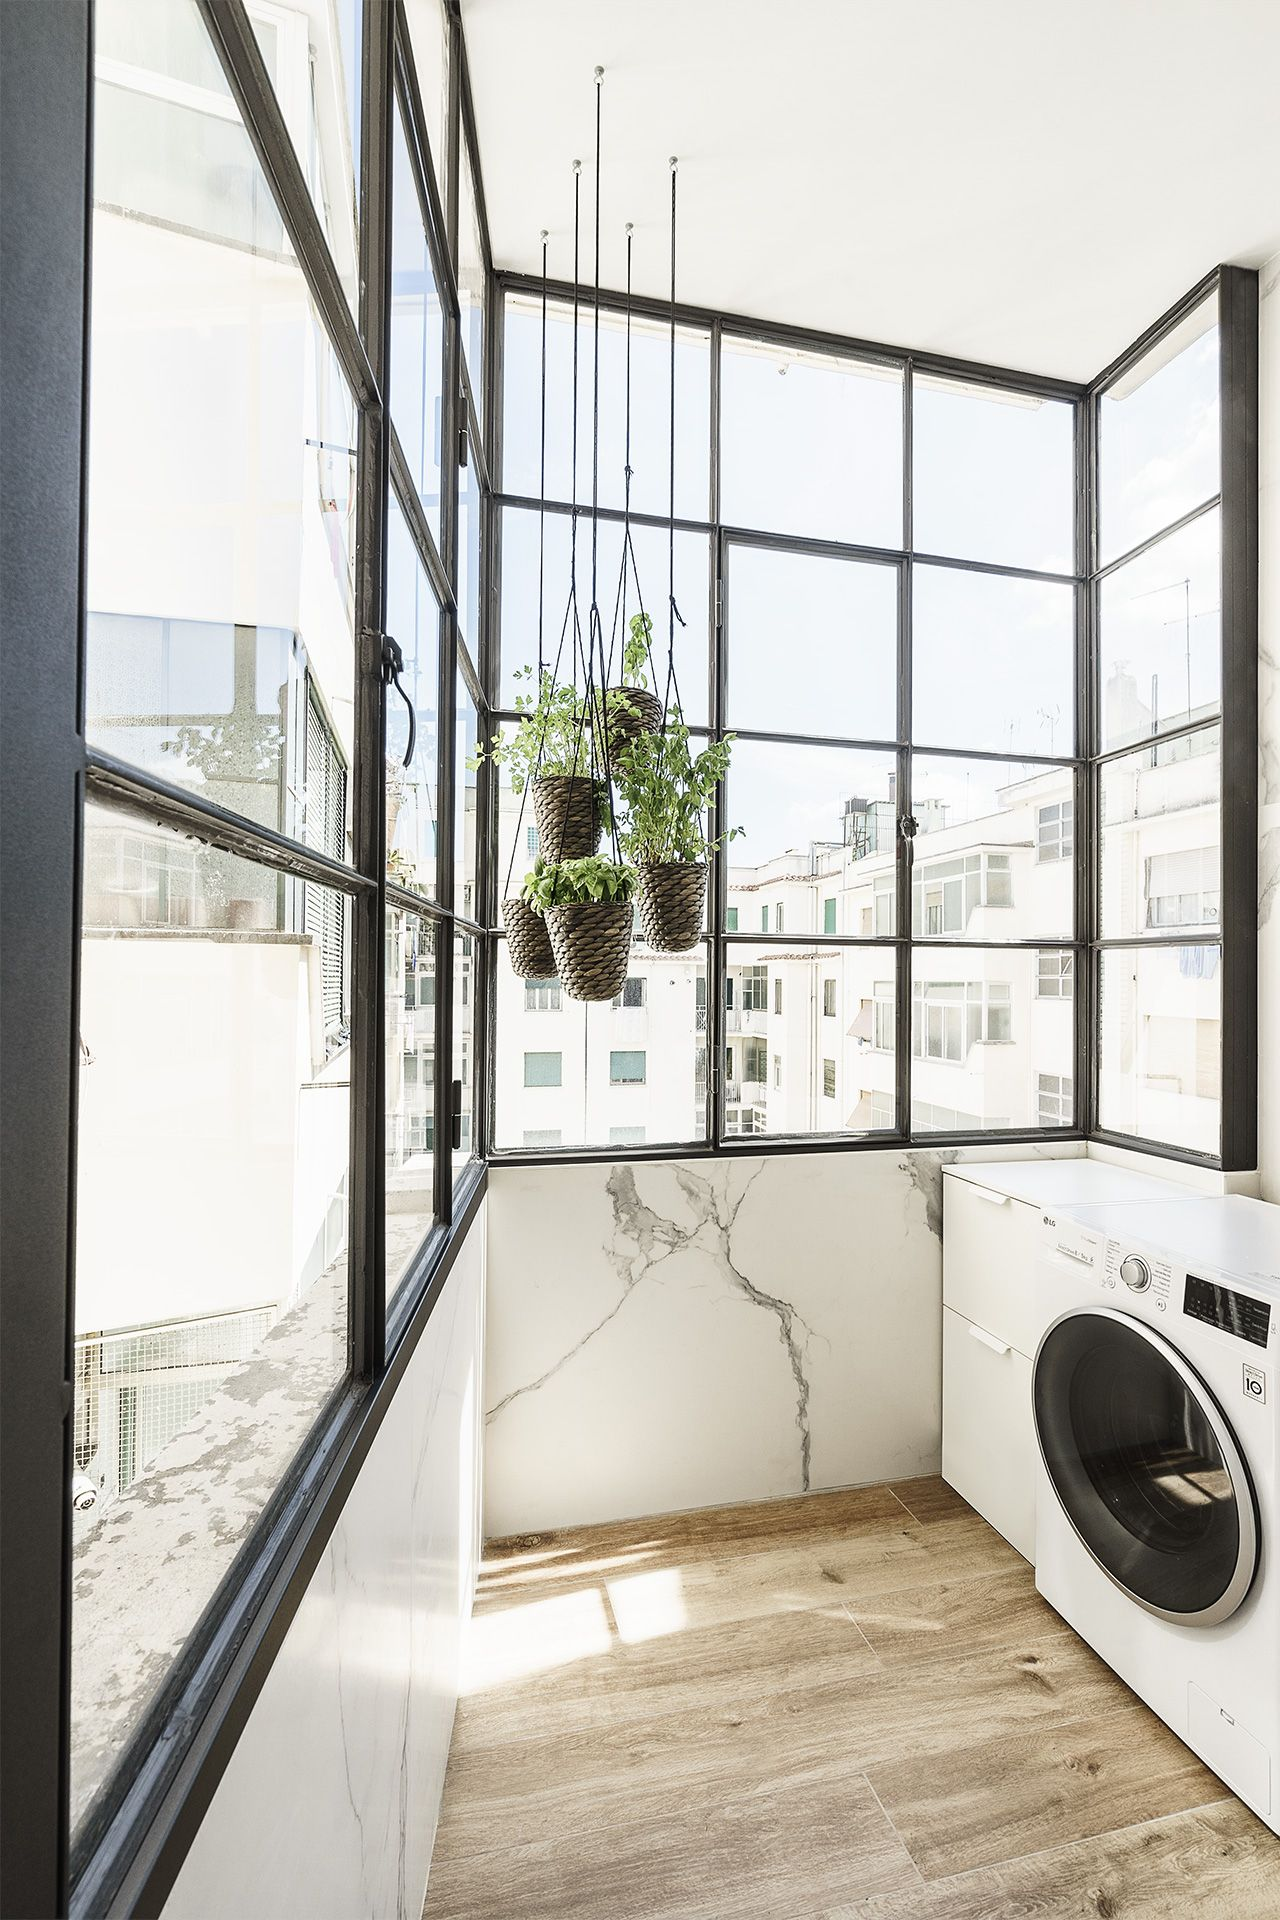 This lovely laundry room makes the task a delight.